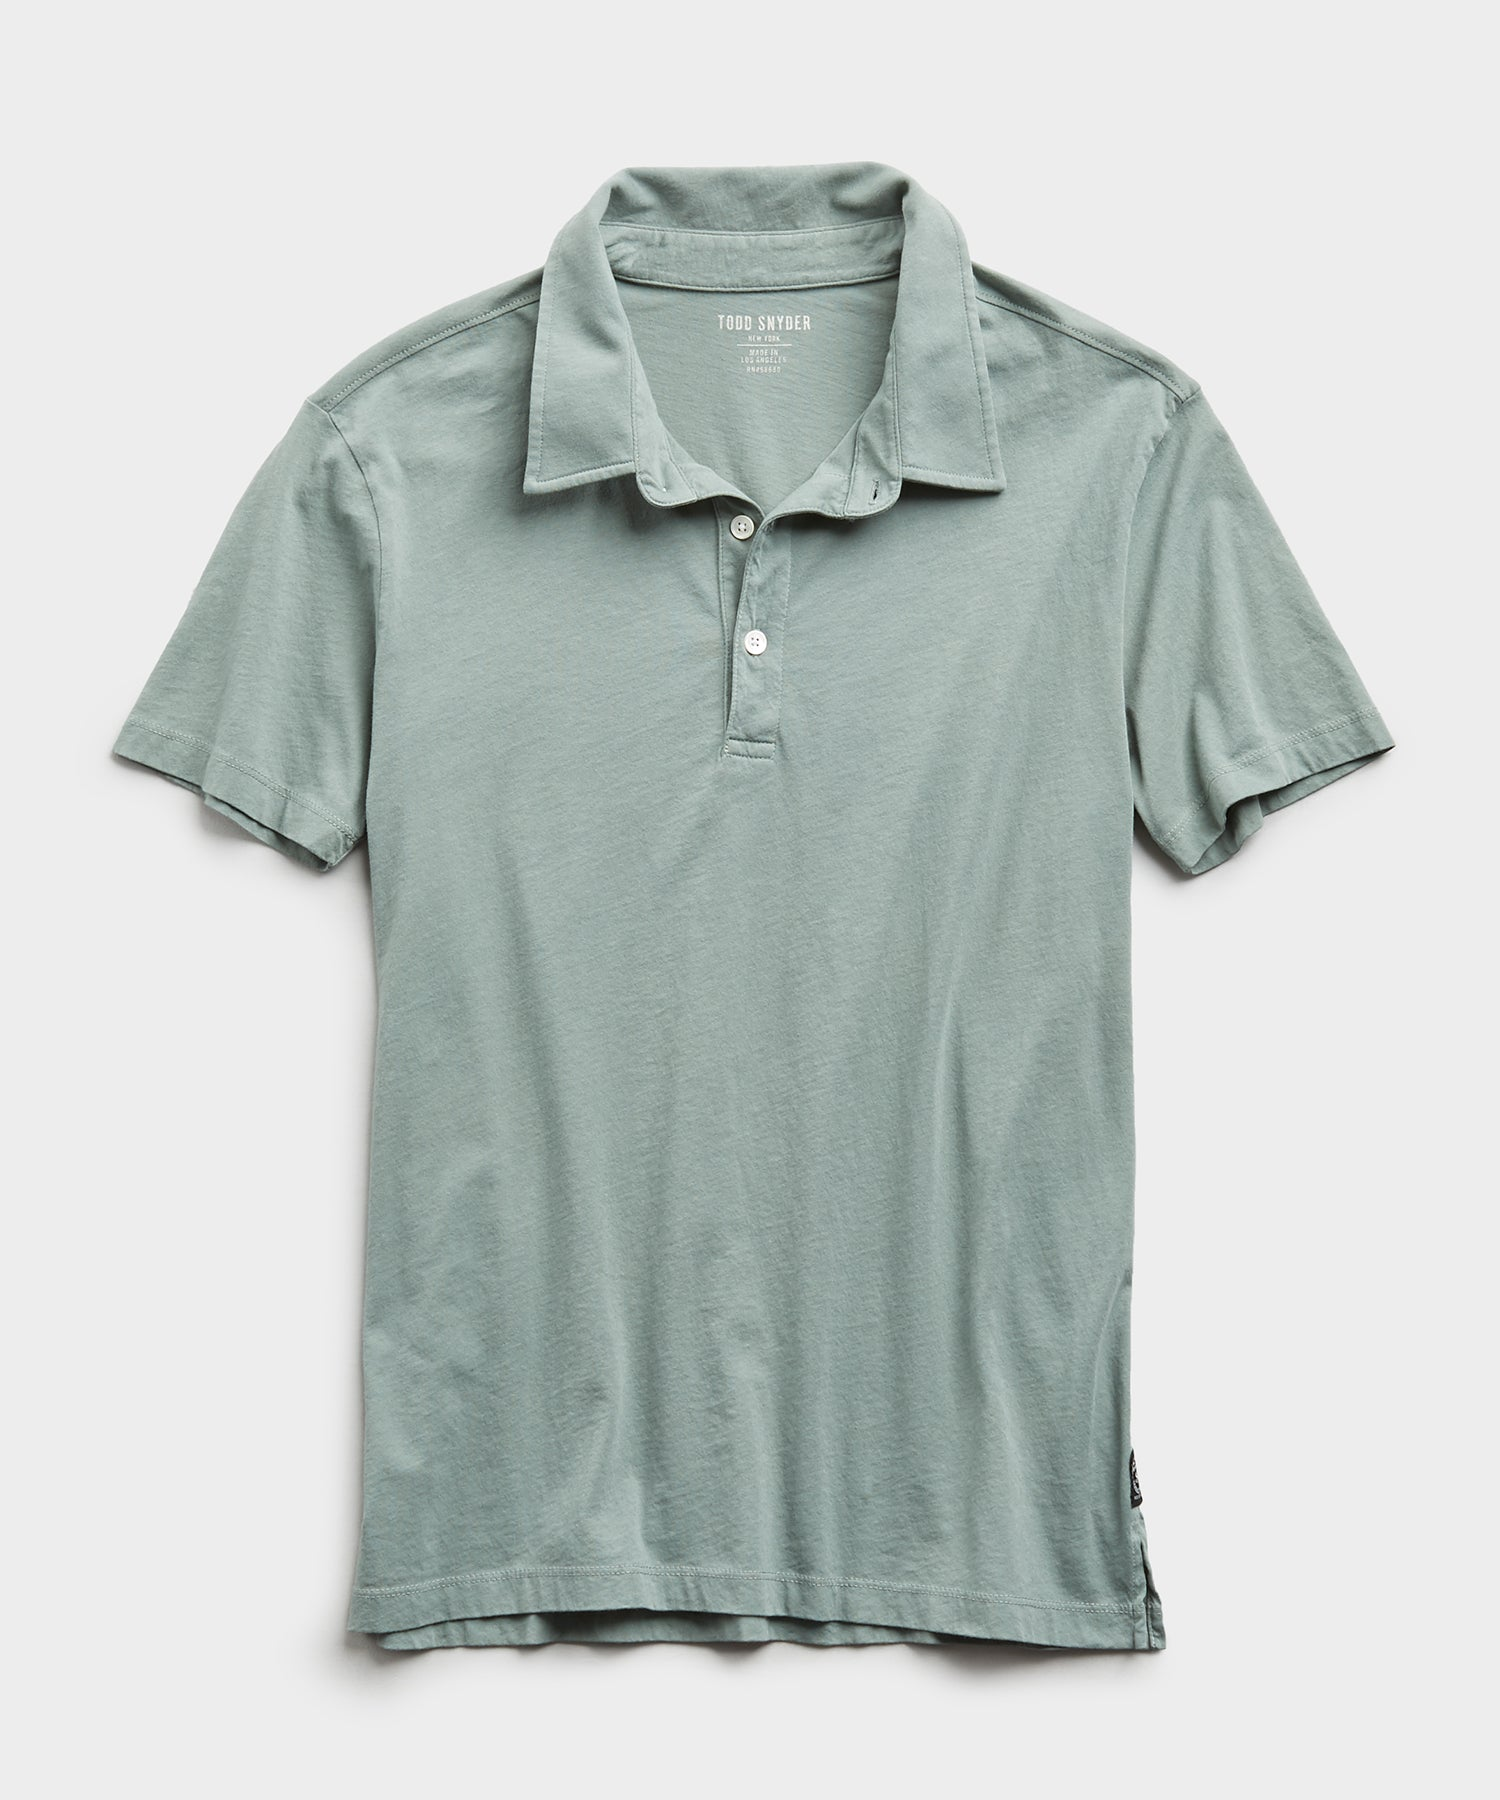 Made In L.A. Short Sleeve Jersey Polo in Pistachio